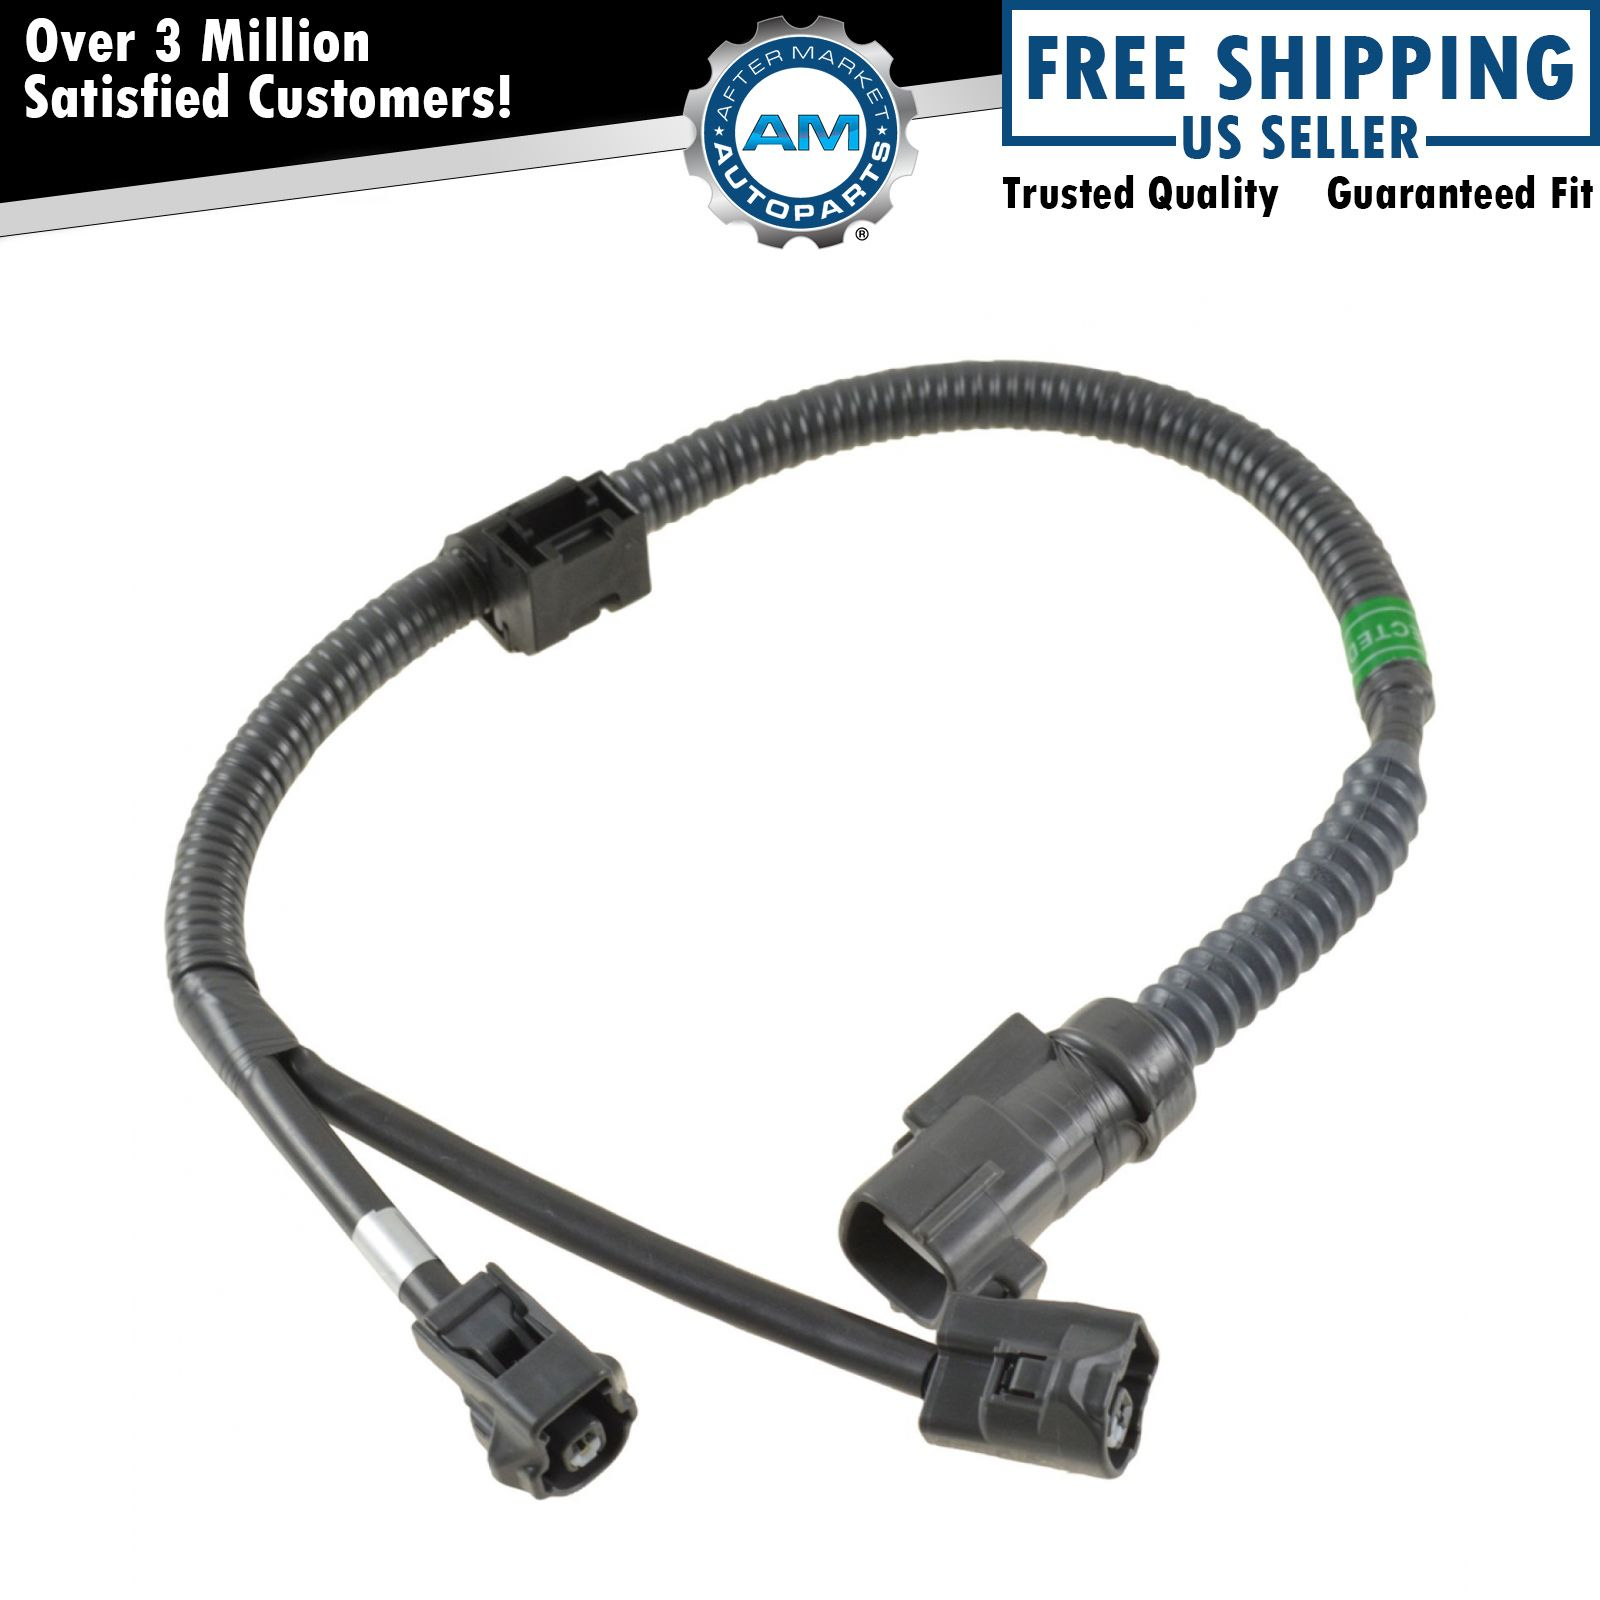 AM 3930808514 oem engine knock sensor wiring harness pigtail plug for 3 0 toyota 2001 toyota highlander knock sensor wiring harness at eliteediting.co